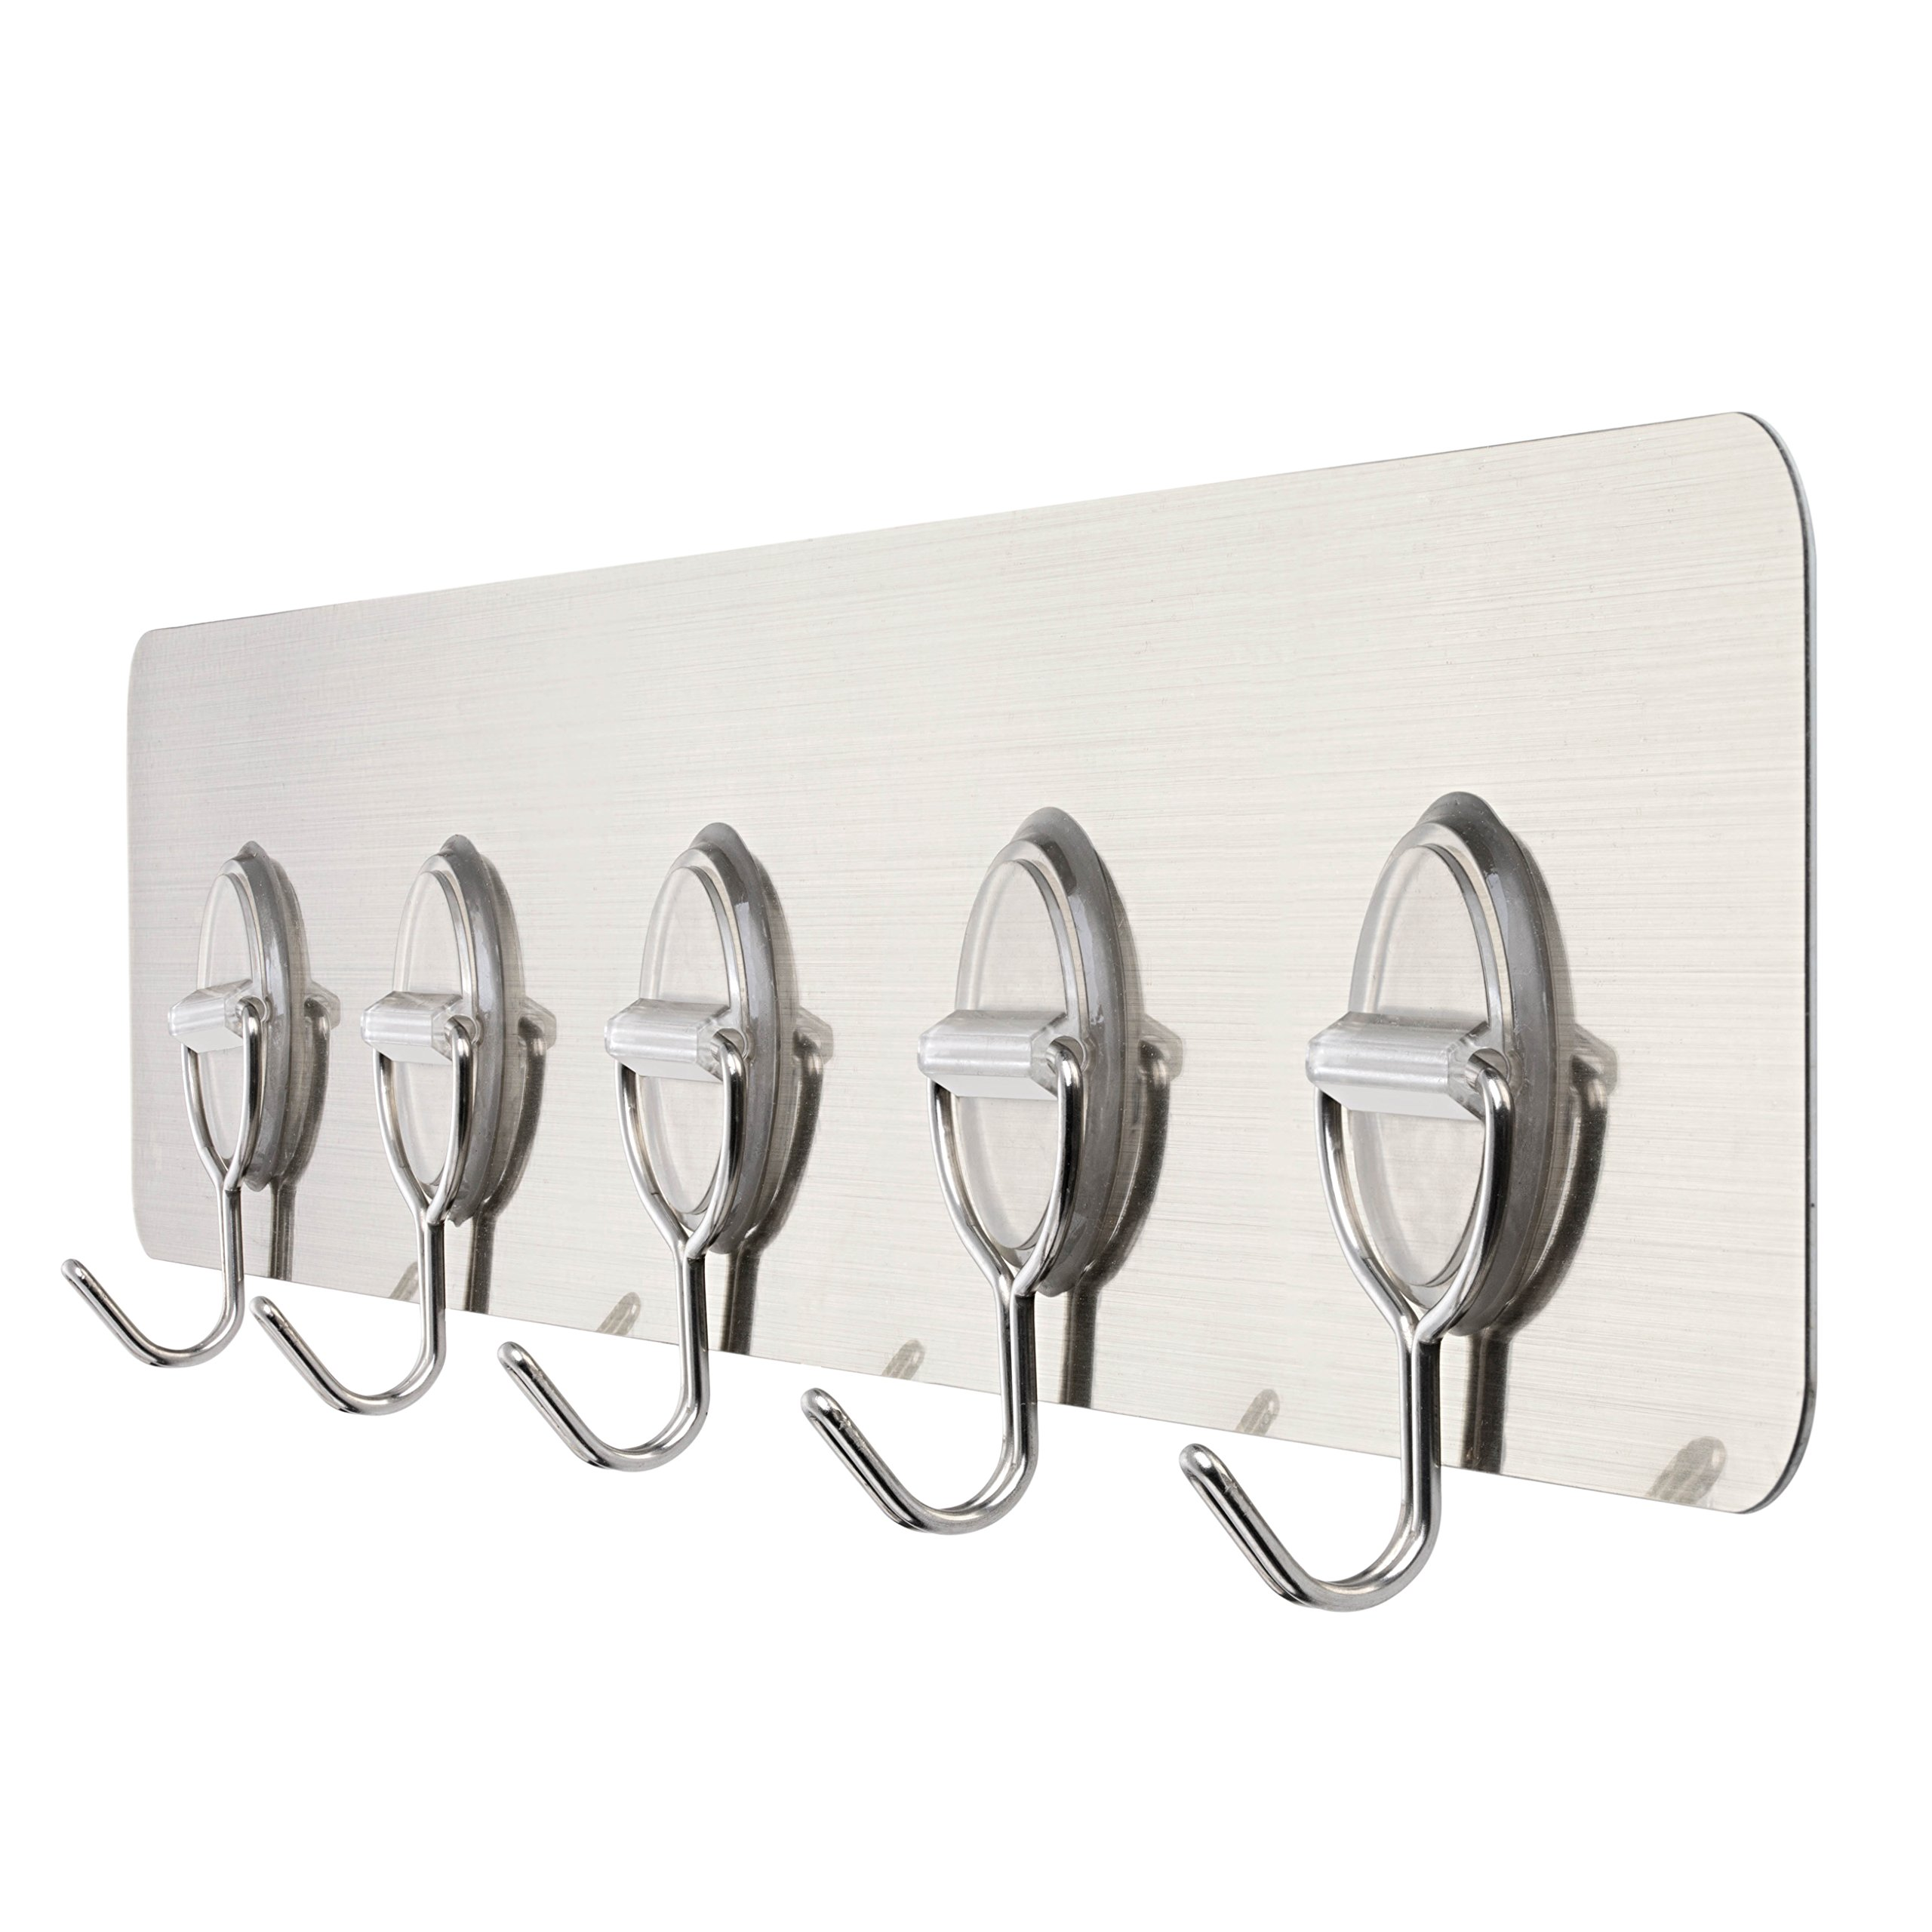 PROLOSO Traceless Reusable Adhesive 5-Hook Rack Sticky Wall Hook Rail Gold for Office Home Kitchen Bathroom